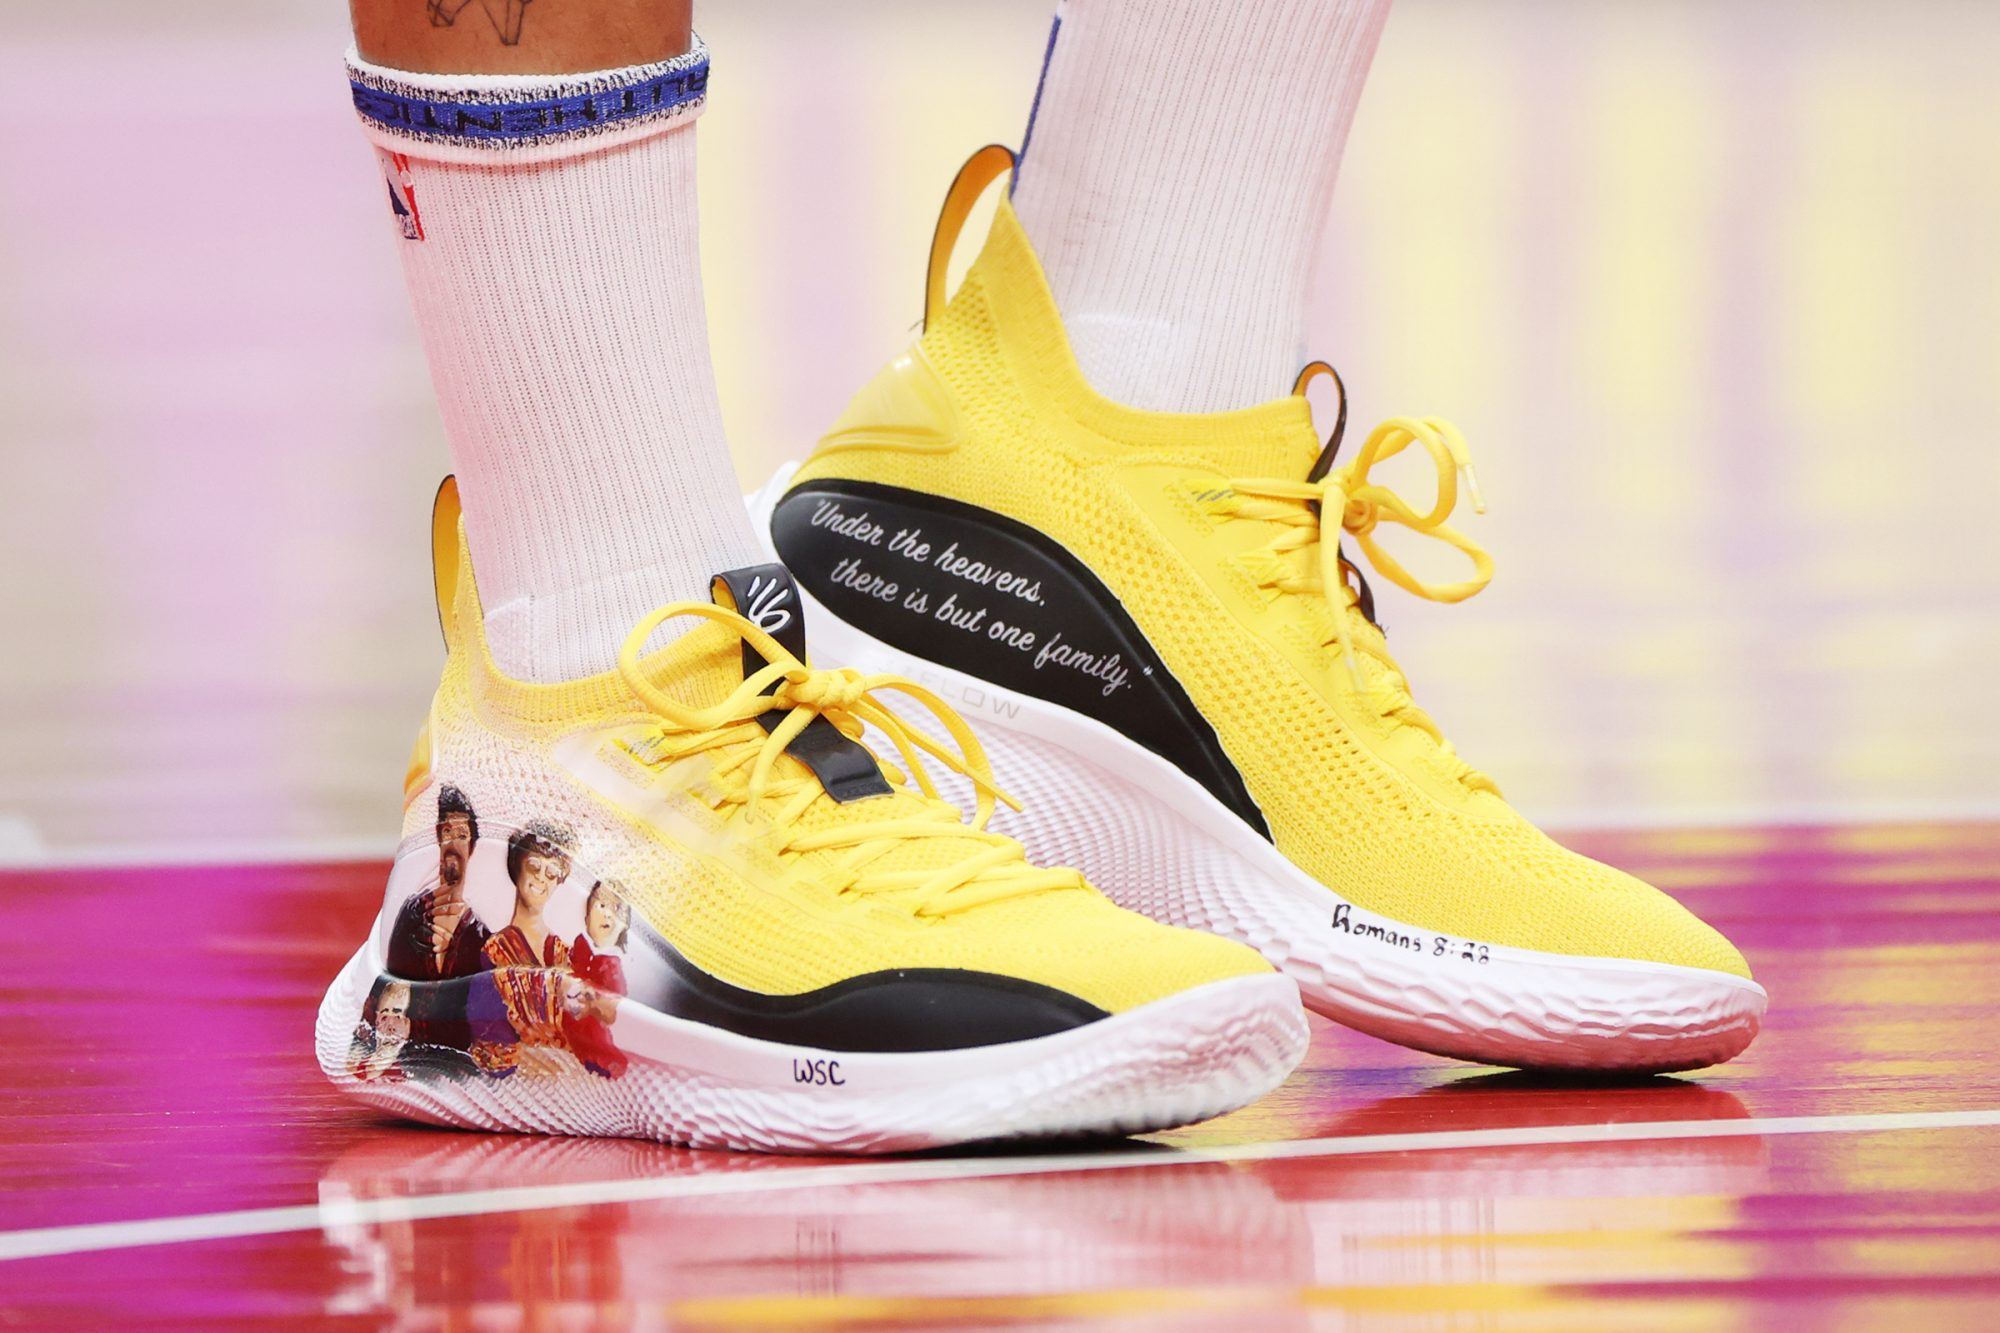 Stephen Curry Wears Custom Hand-Painted Sneakers to Support Asian American Community